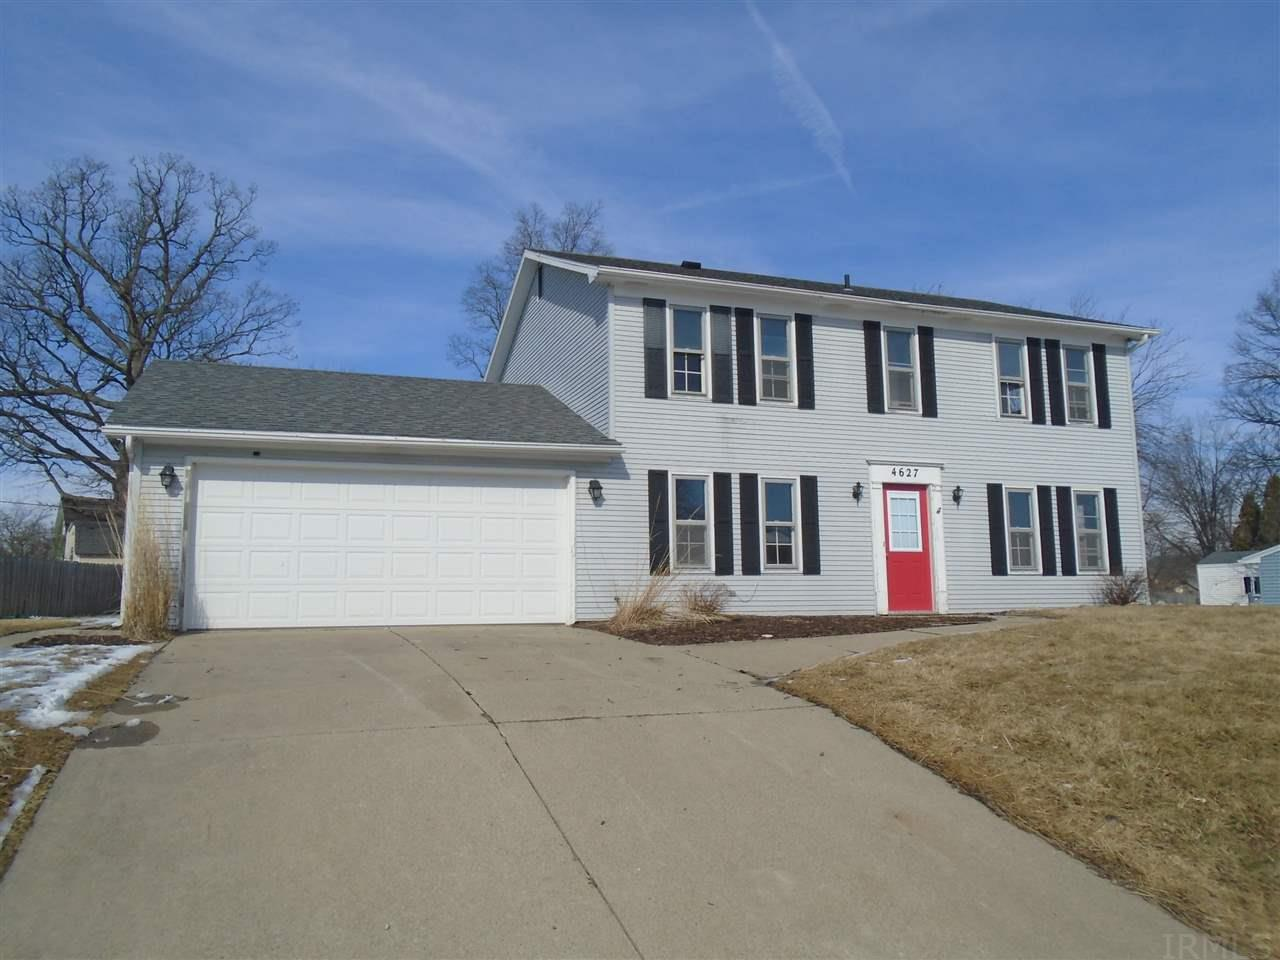 4627  Whiteford Fort Wayne, IN 46816